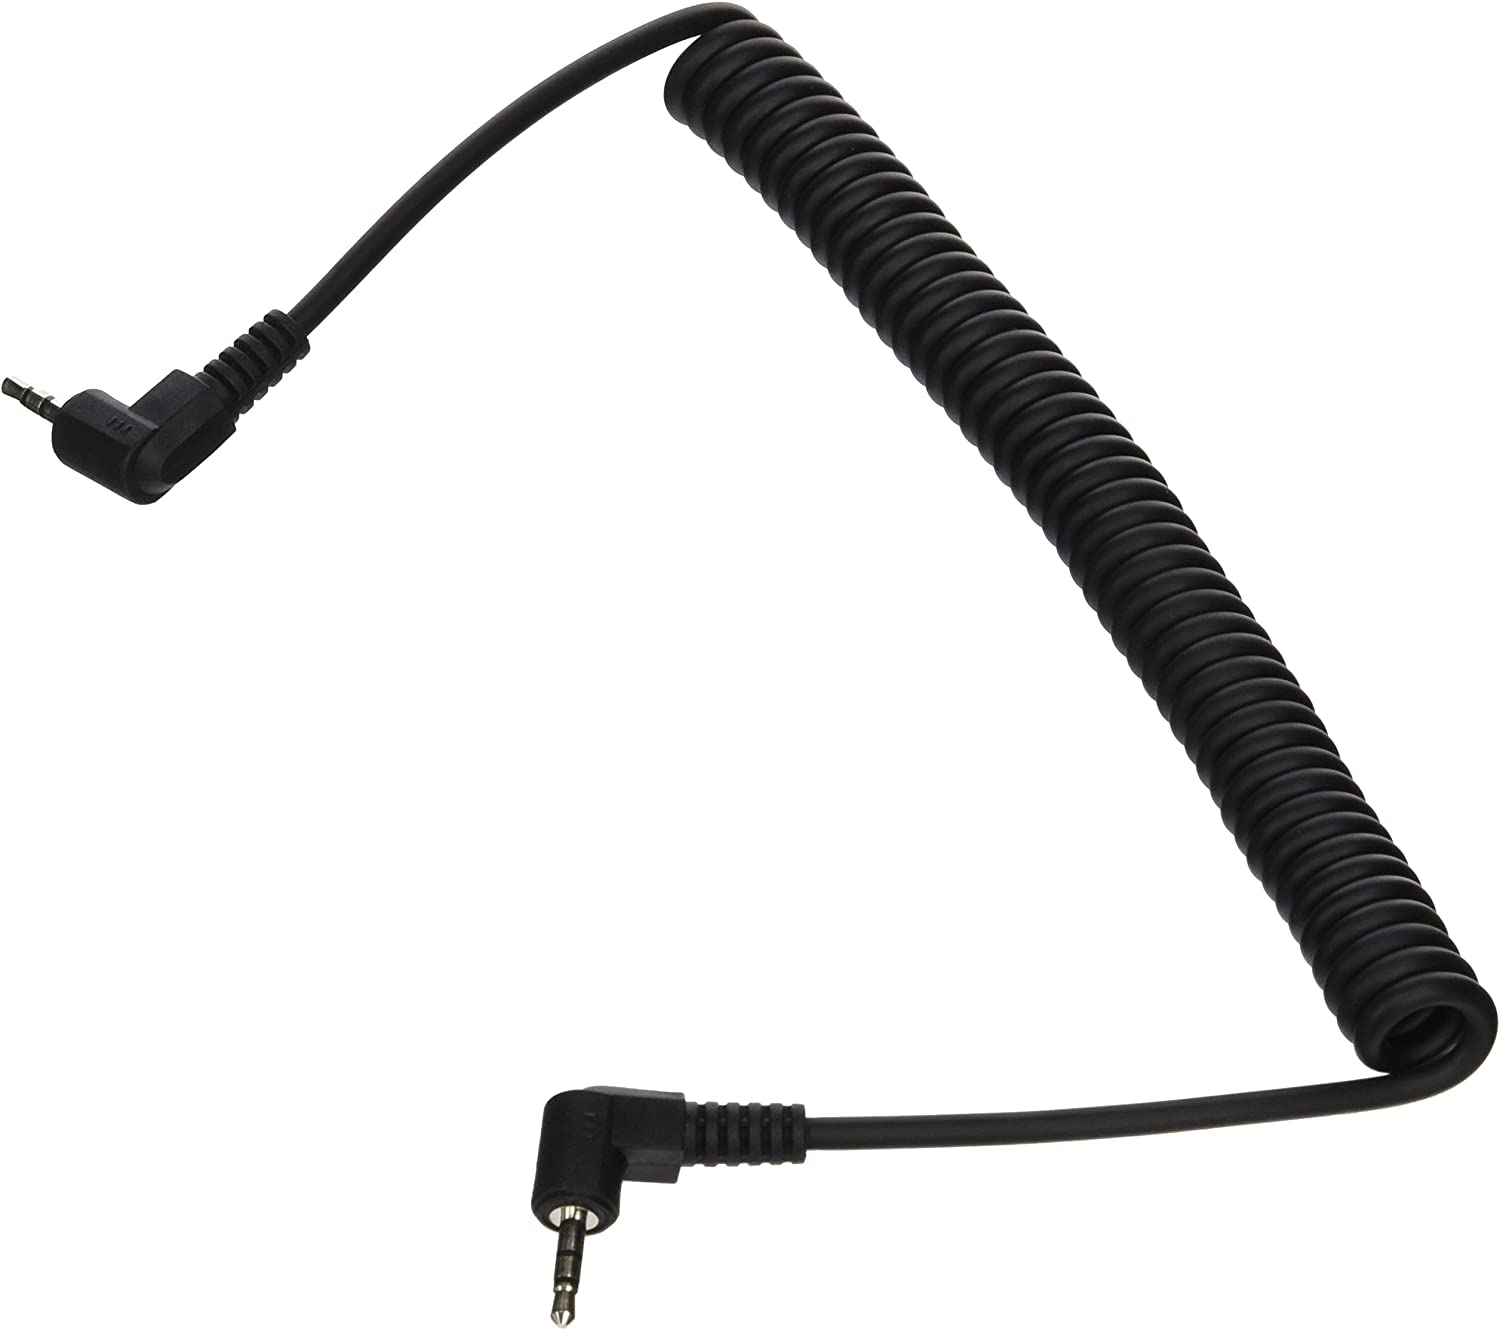 Manfrotto 522SCA Spare Standard Control Cable for 521, 522 and 523 Remote Controllers,Black